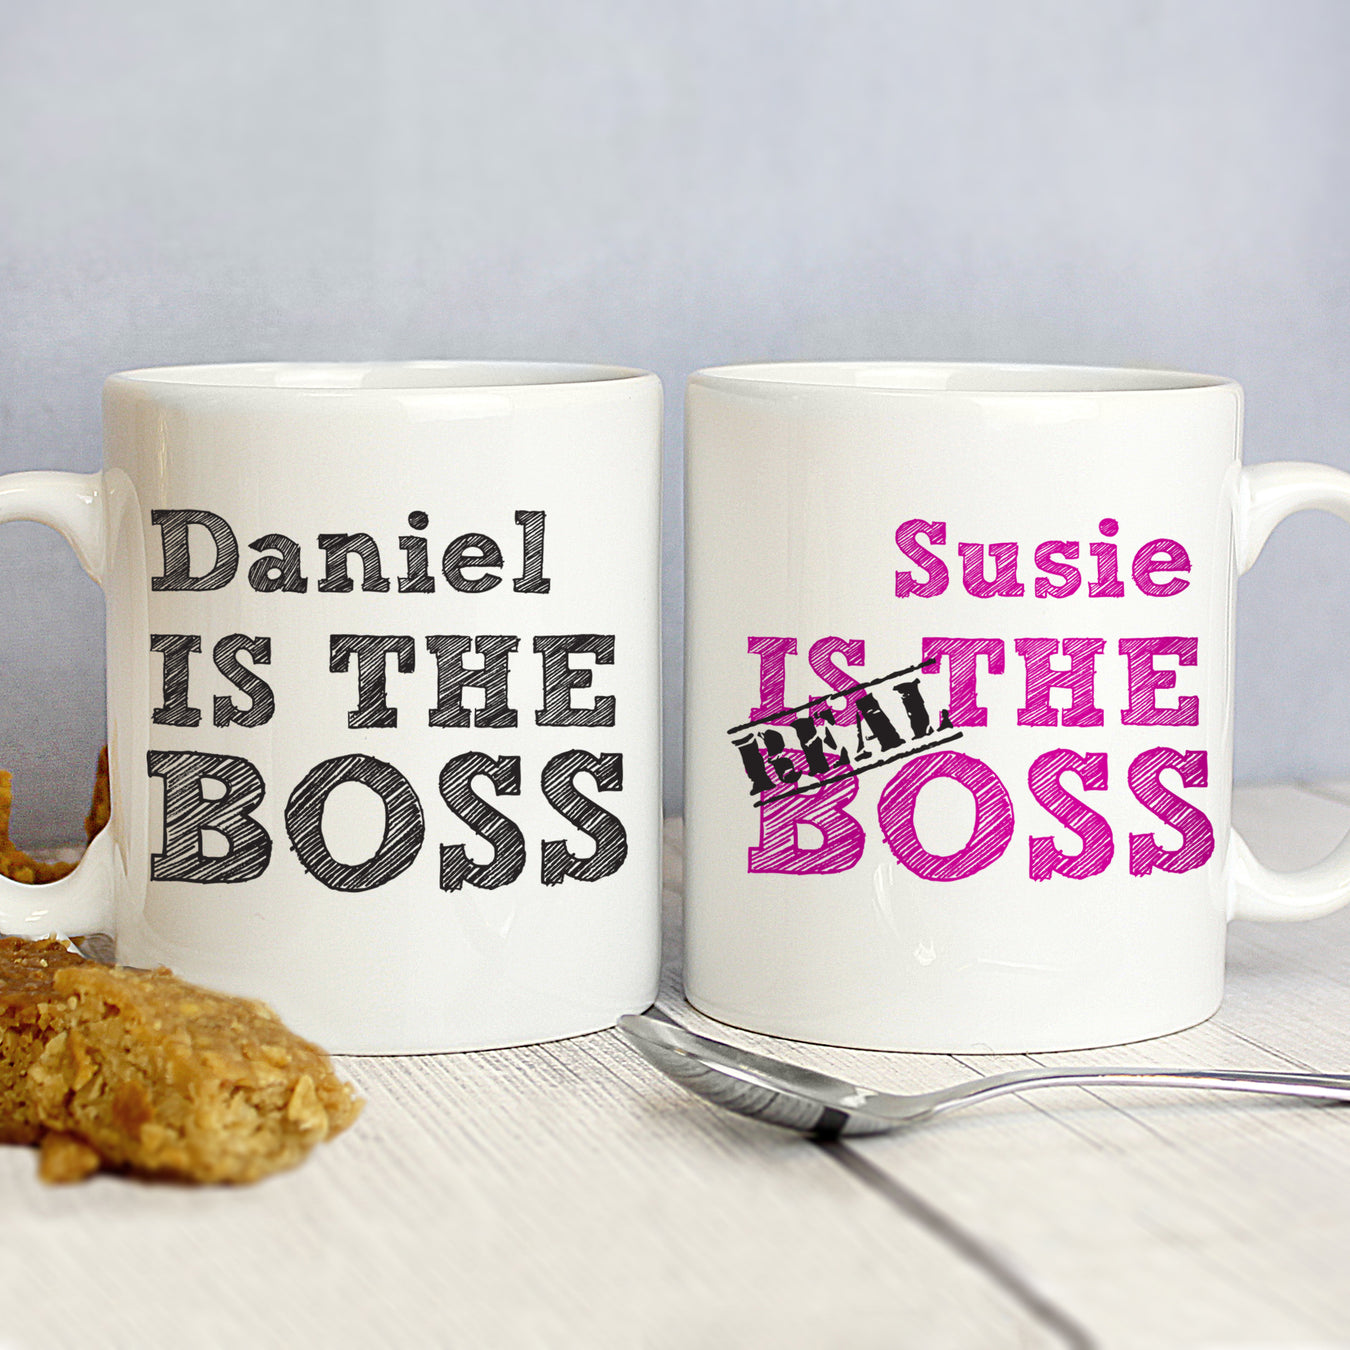 Personalised Mug Sets